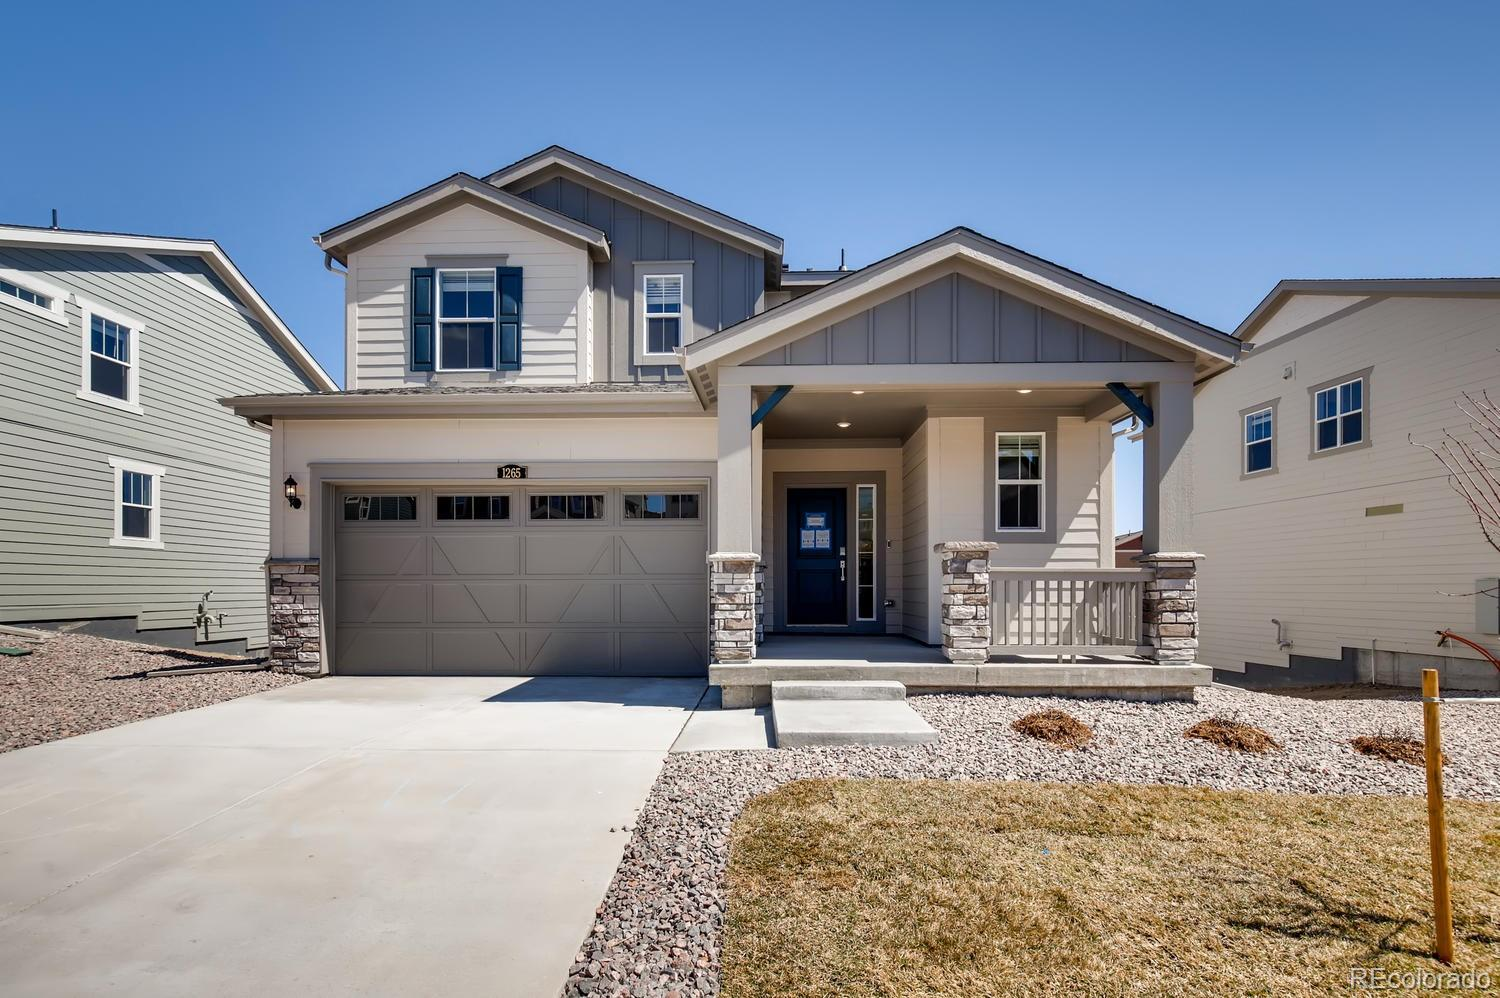 Recently reduced to 400K! One of the last homes in Phase 1 at Gold Creek Valley! Rare garden level two story with a full-unfinished basement! Enjoy upgraded white cabinets, granite countertops in kitchen and master bath, all stainless steel appliances included! 10'x12' uncovered deck off the dining room is perfect to enjoy coffee and Colorado's morning Sun! Three bedrooms and laundry located on the upper level, open floor plan with room to grow. This home will not last! Close to community park and Gold Creek itself! Come tour today!  Estimated completion April 2020.